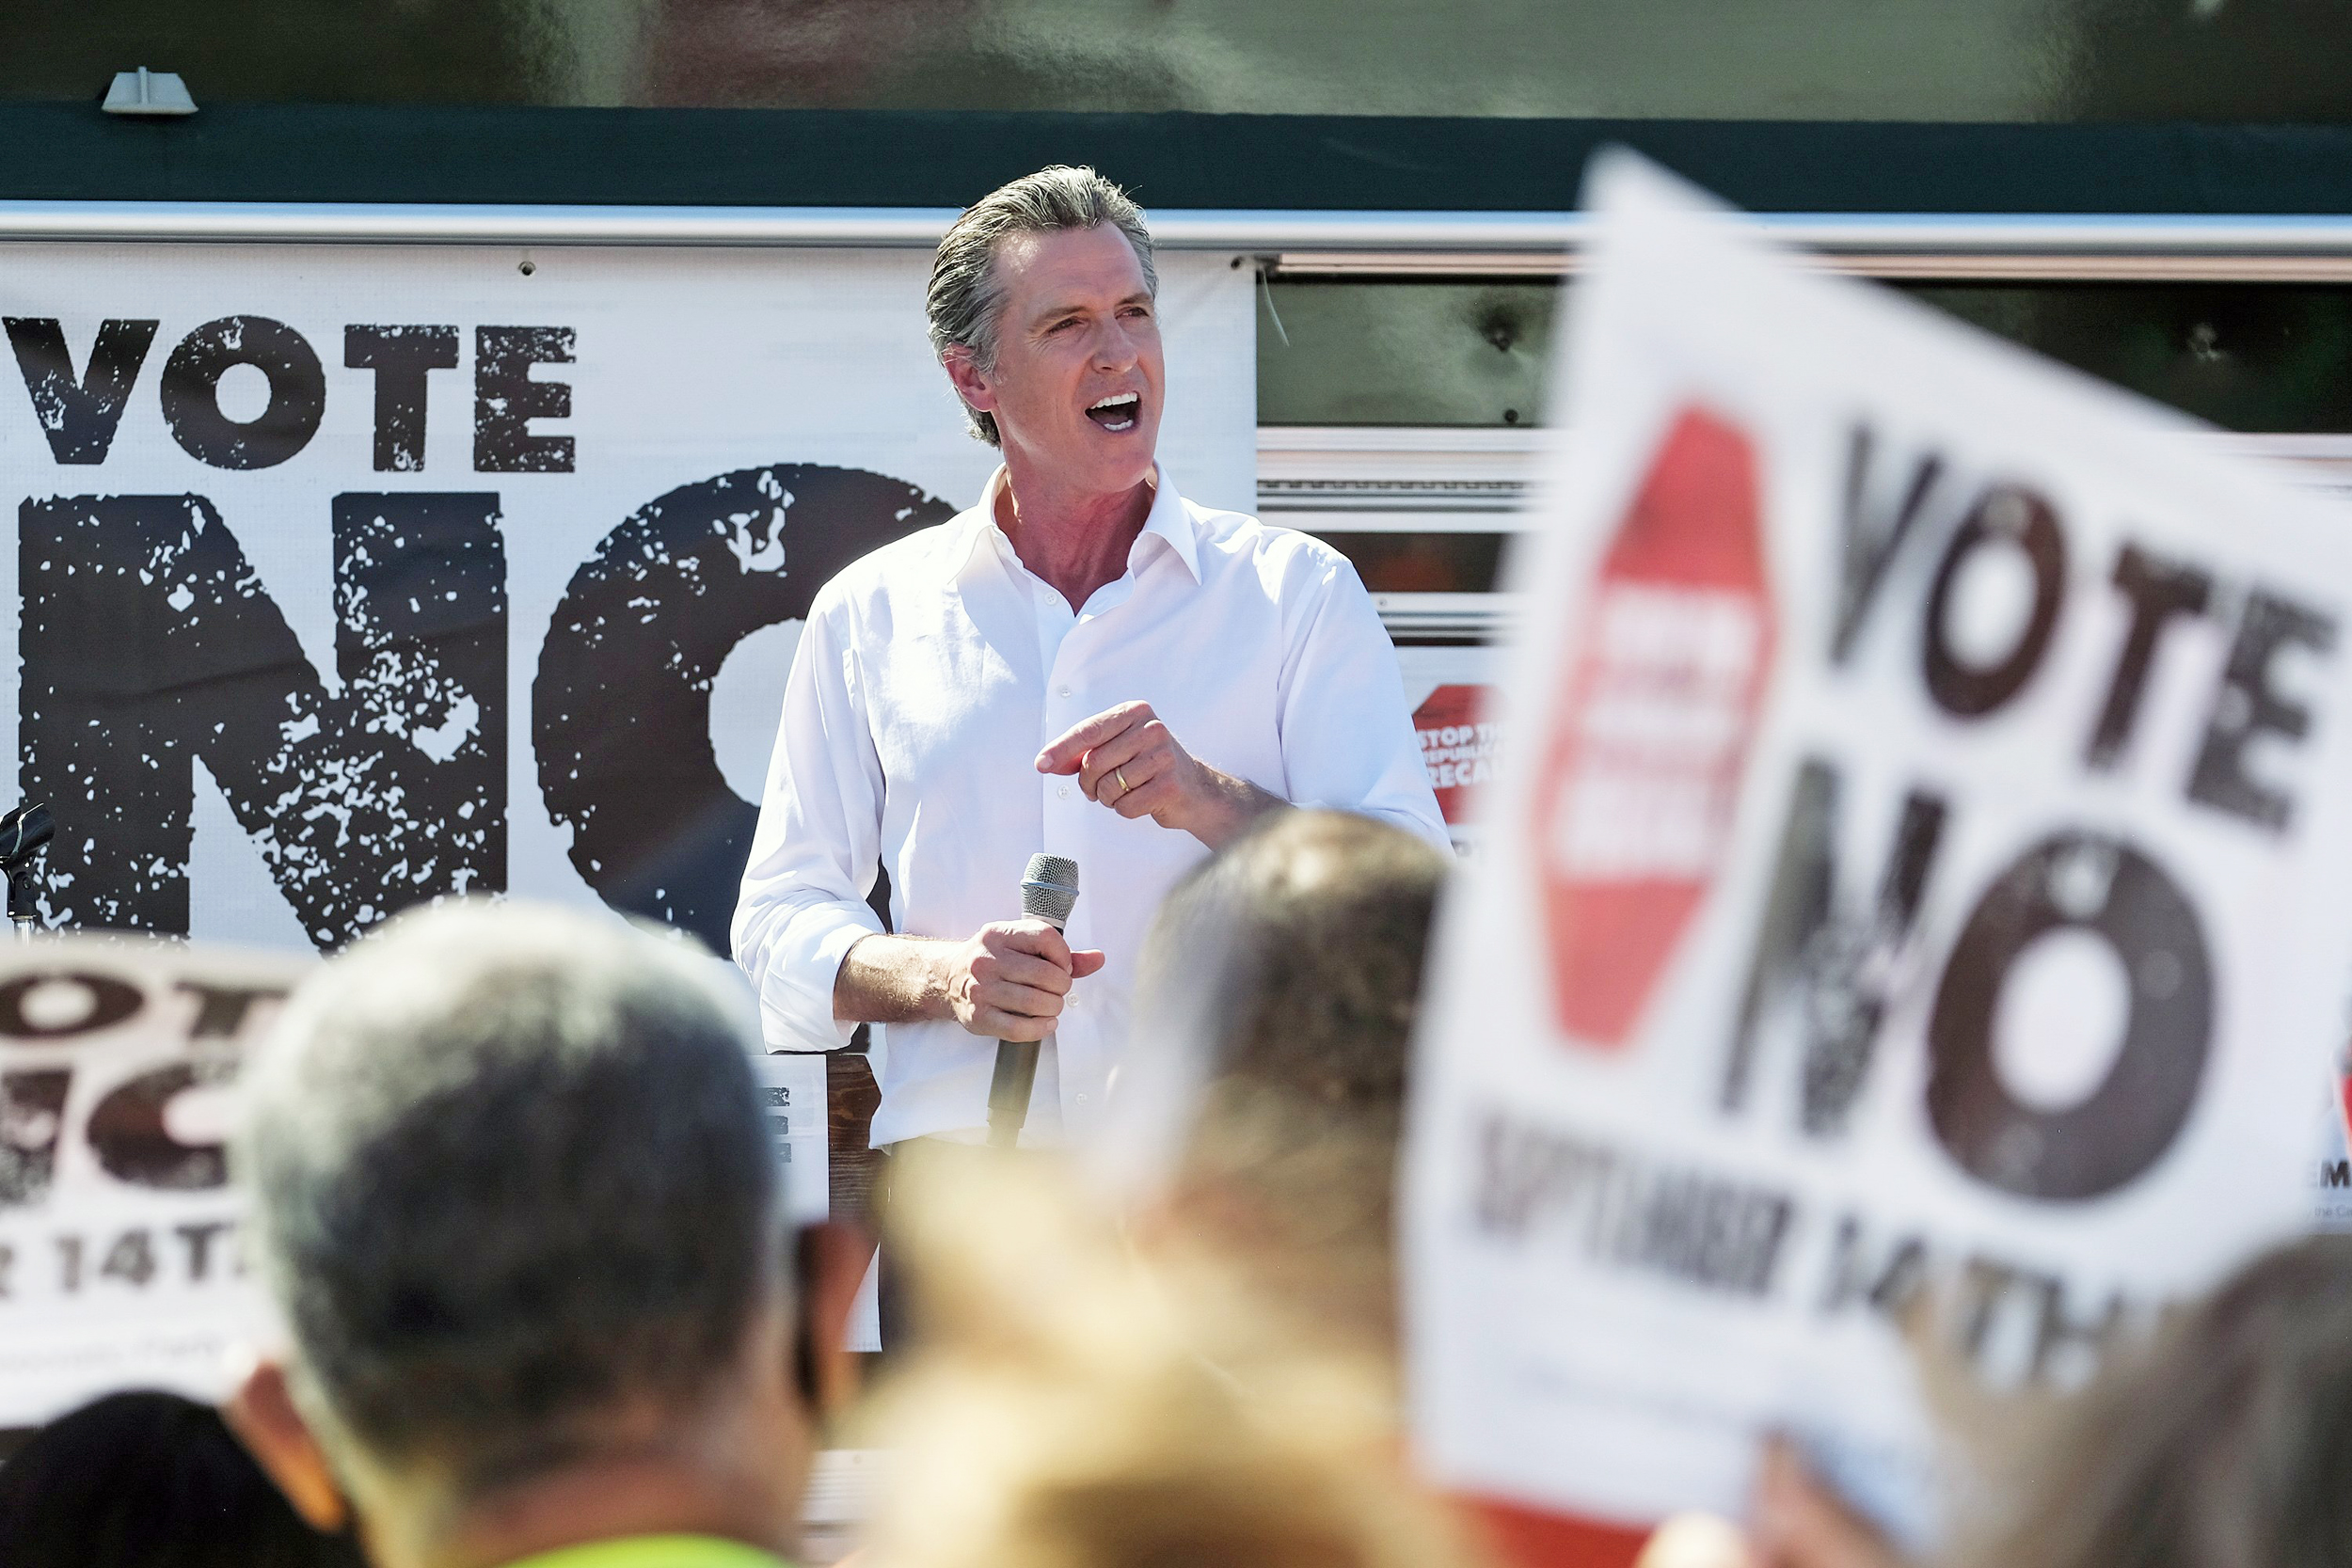 California recall Election Day: Will voters kick Gov. Gavin Newsom out of office?